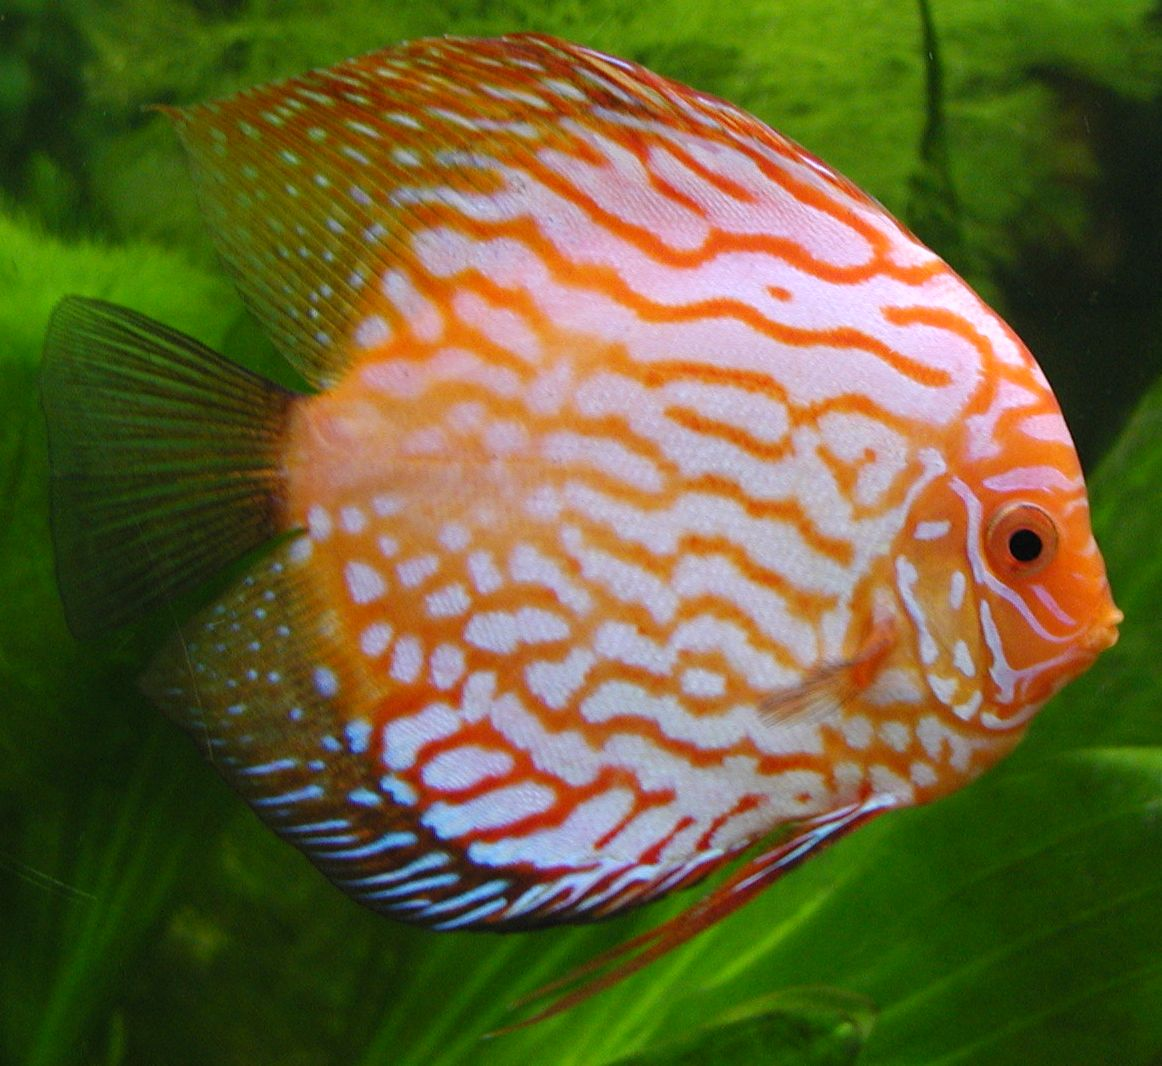 the discus fish